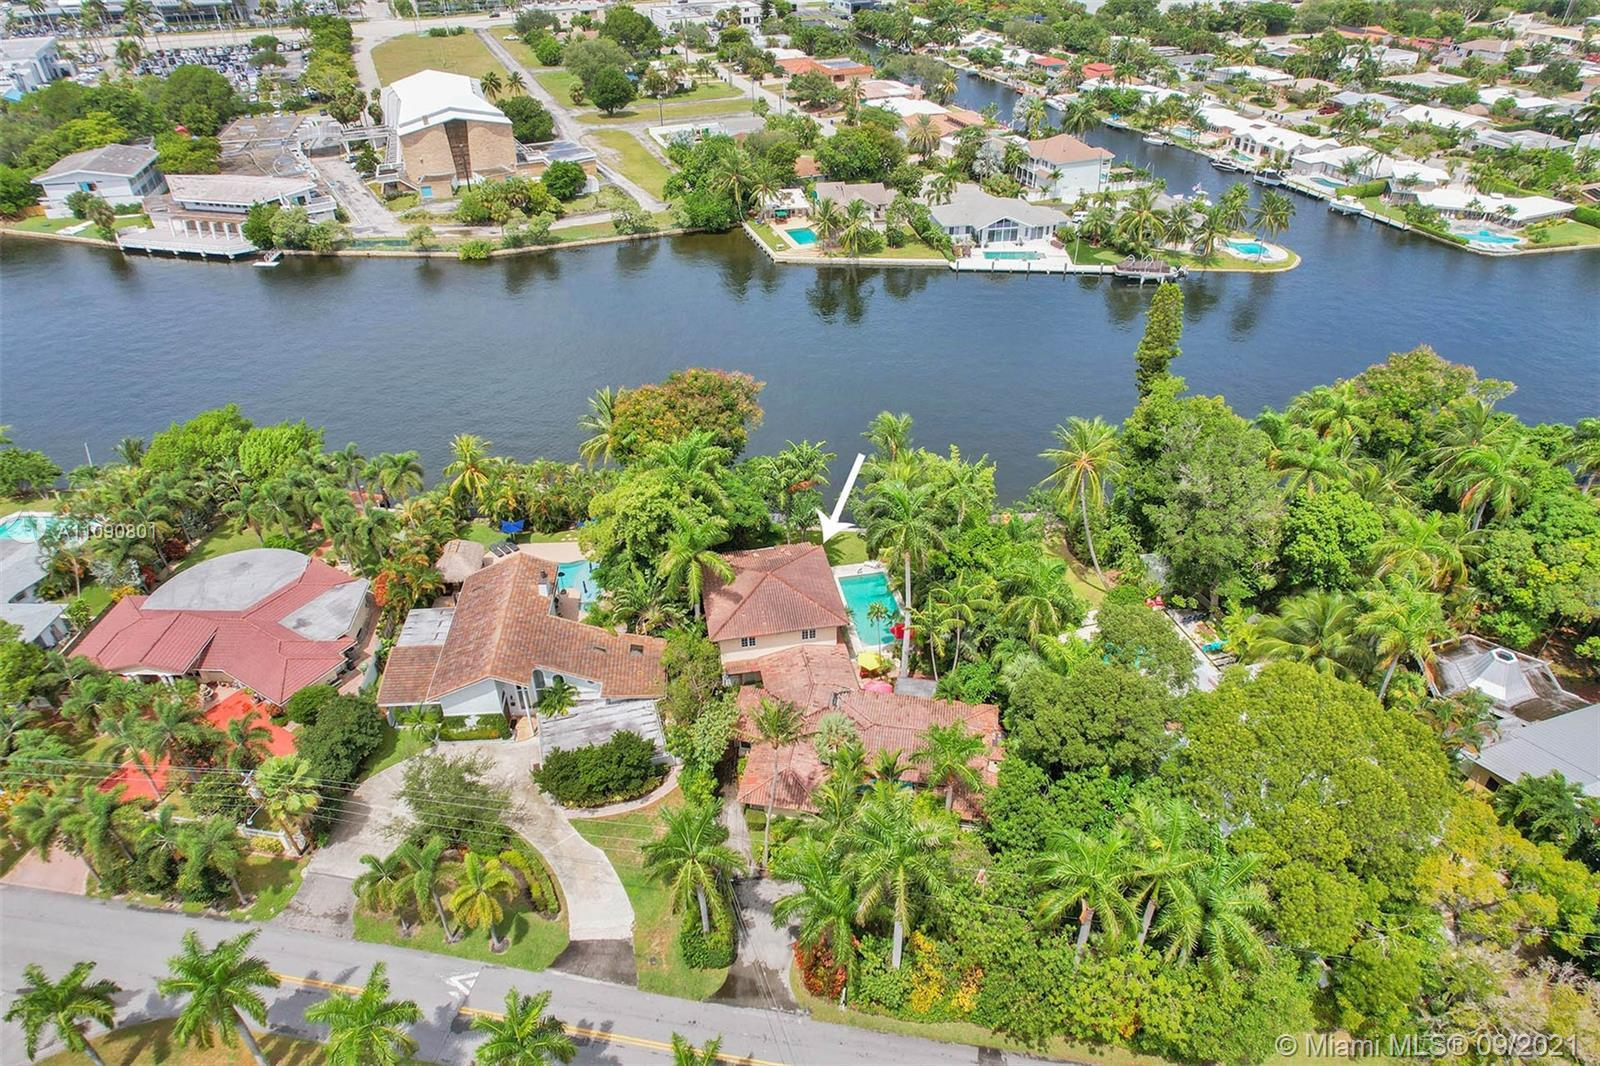 Extremely rare location in unrestricted Watersports zone on 80' of natural middle river with dock an